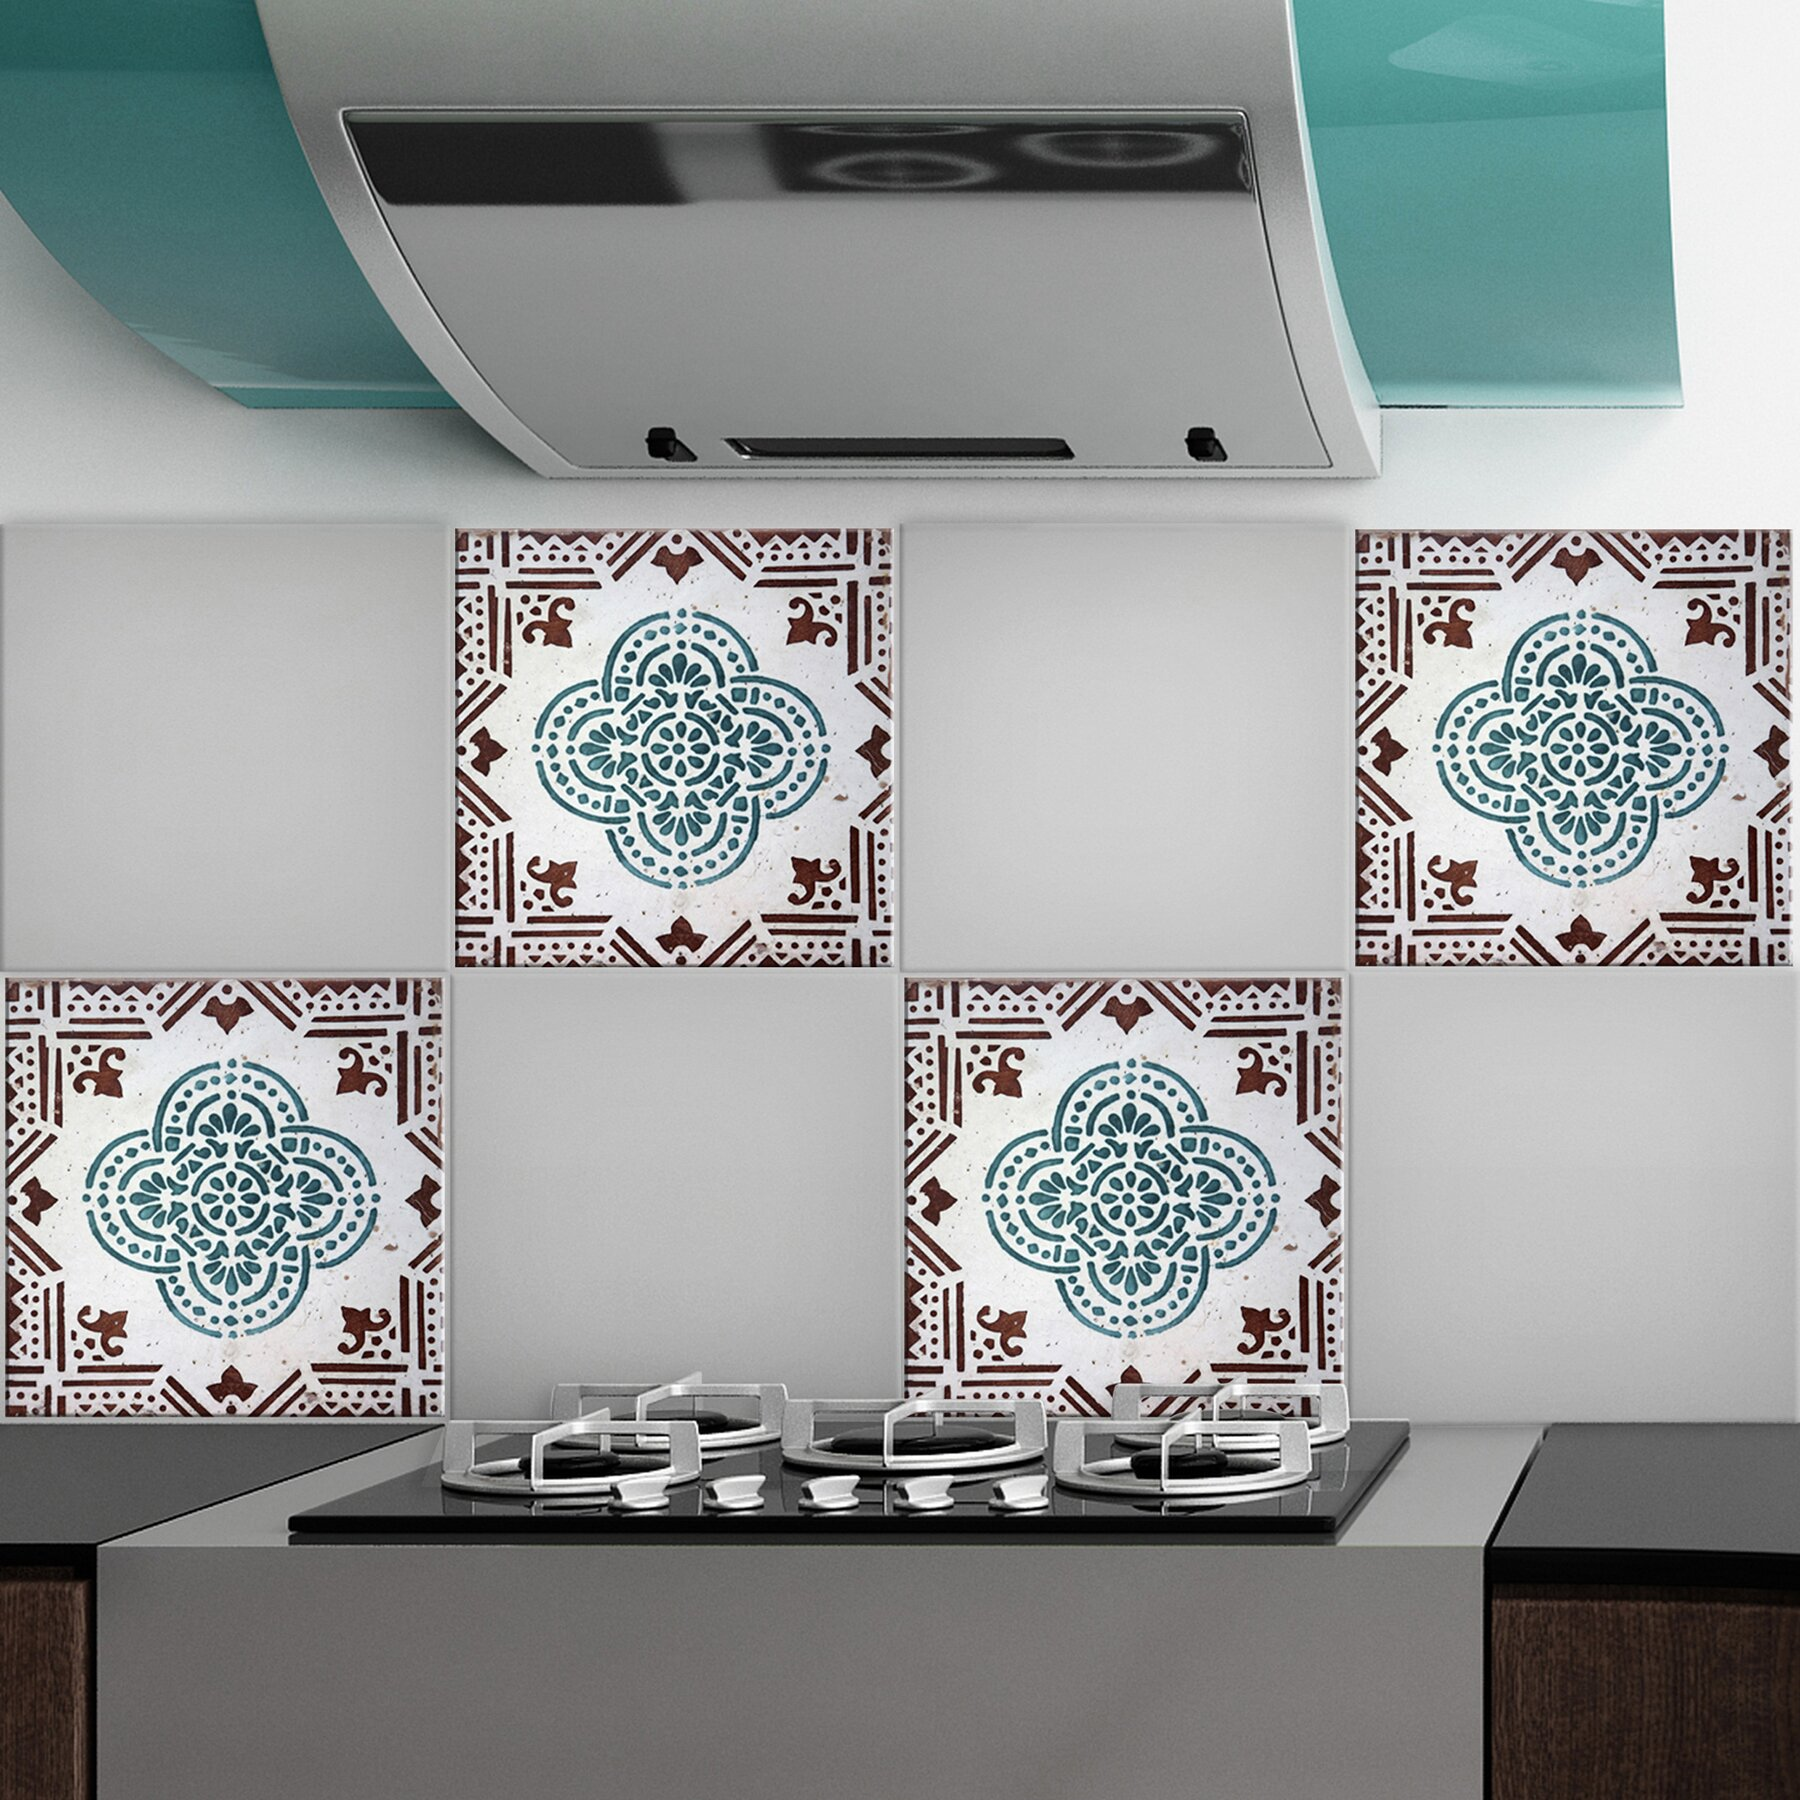 Wallpops water peel and stick tiles wall decal reviews for Peel and stick wallpaper squares